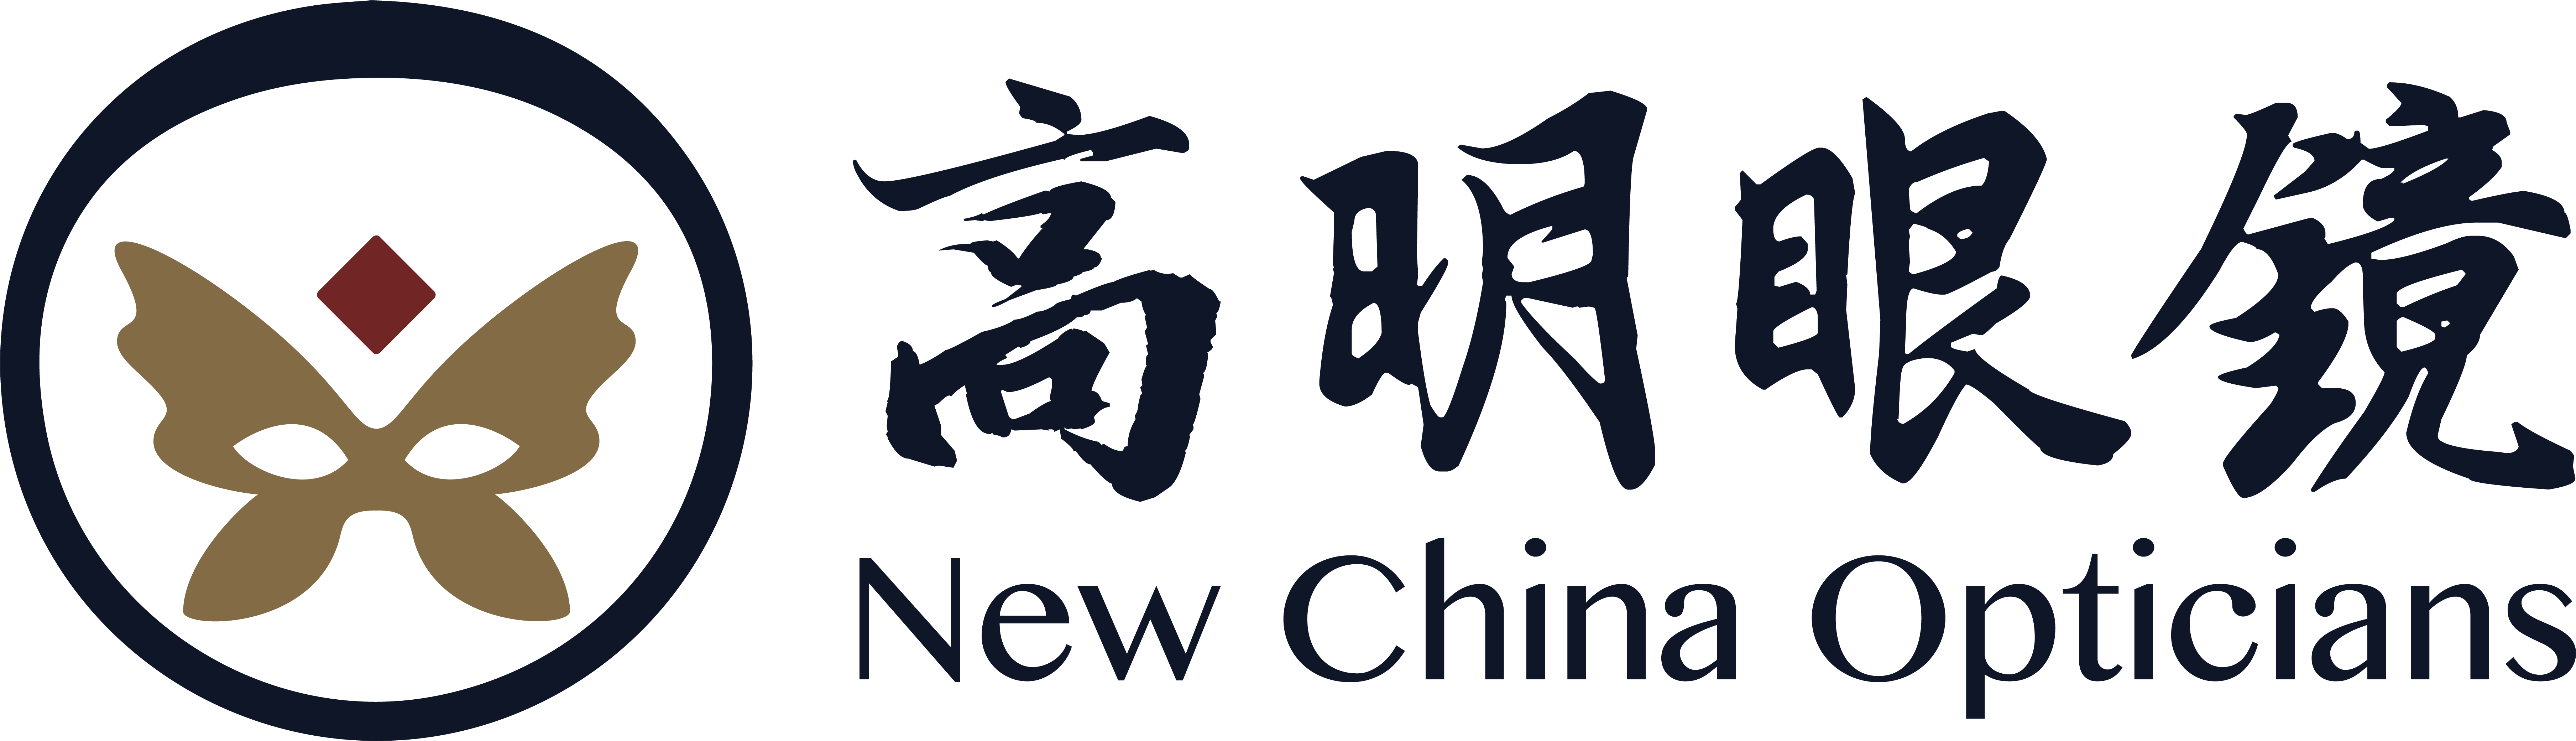 New China Opticians